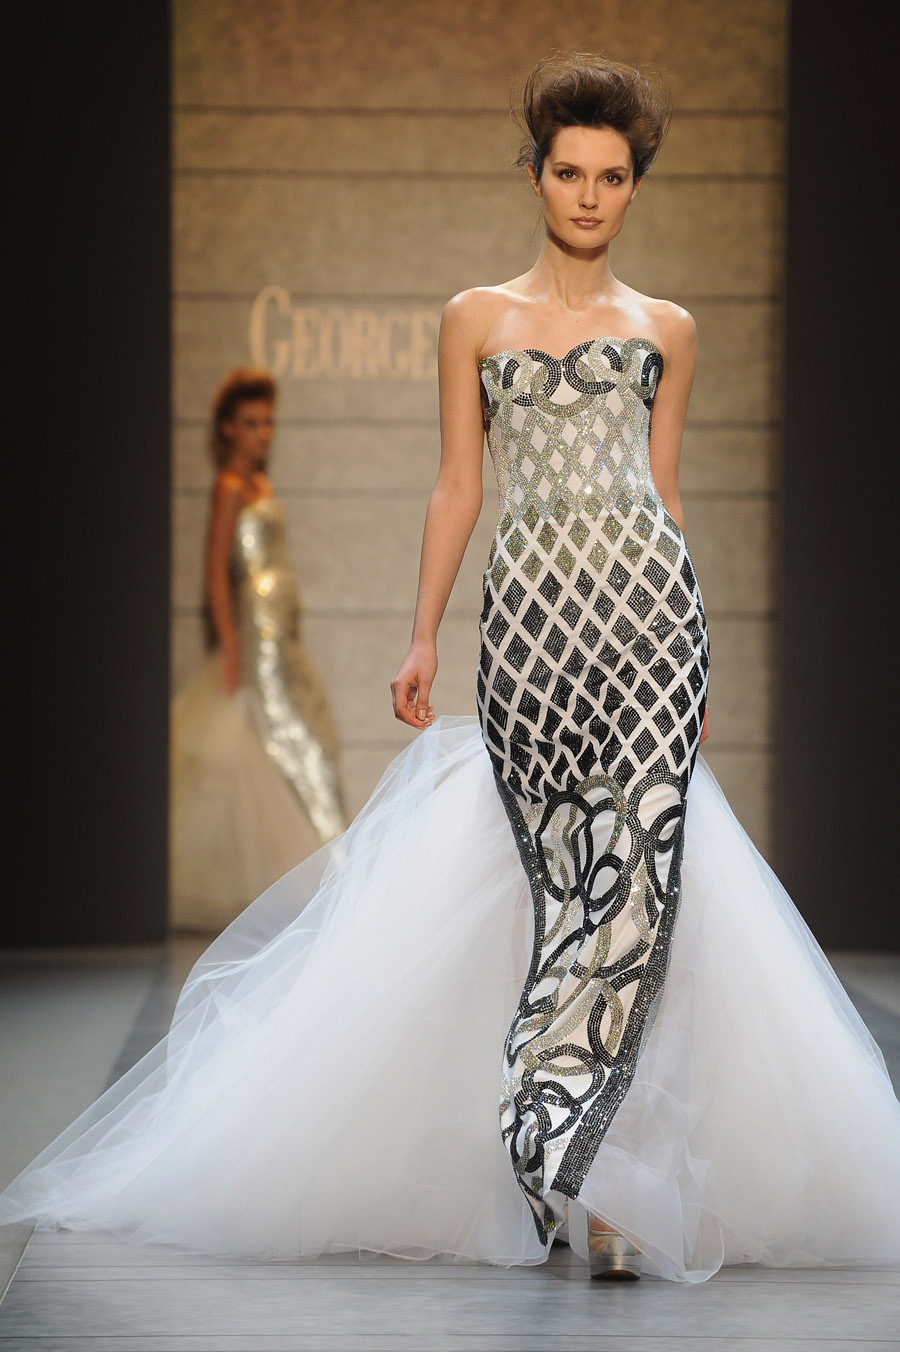 Georges chakra haute couture spring 2010 knocking at the chambre syndicale 39 s door - Chambre de la haute couture ...